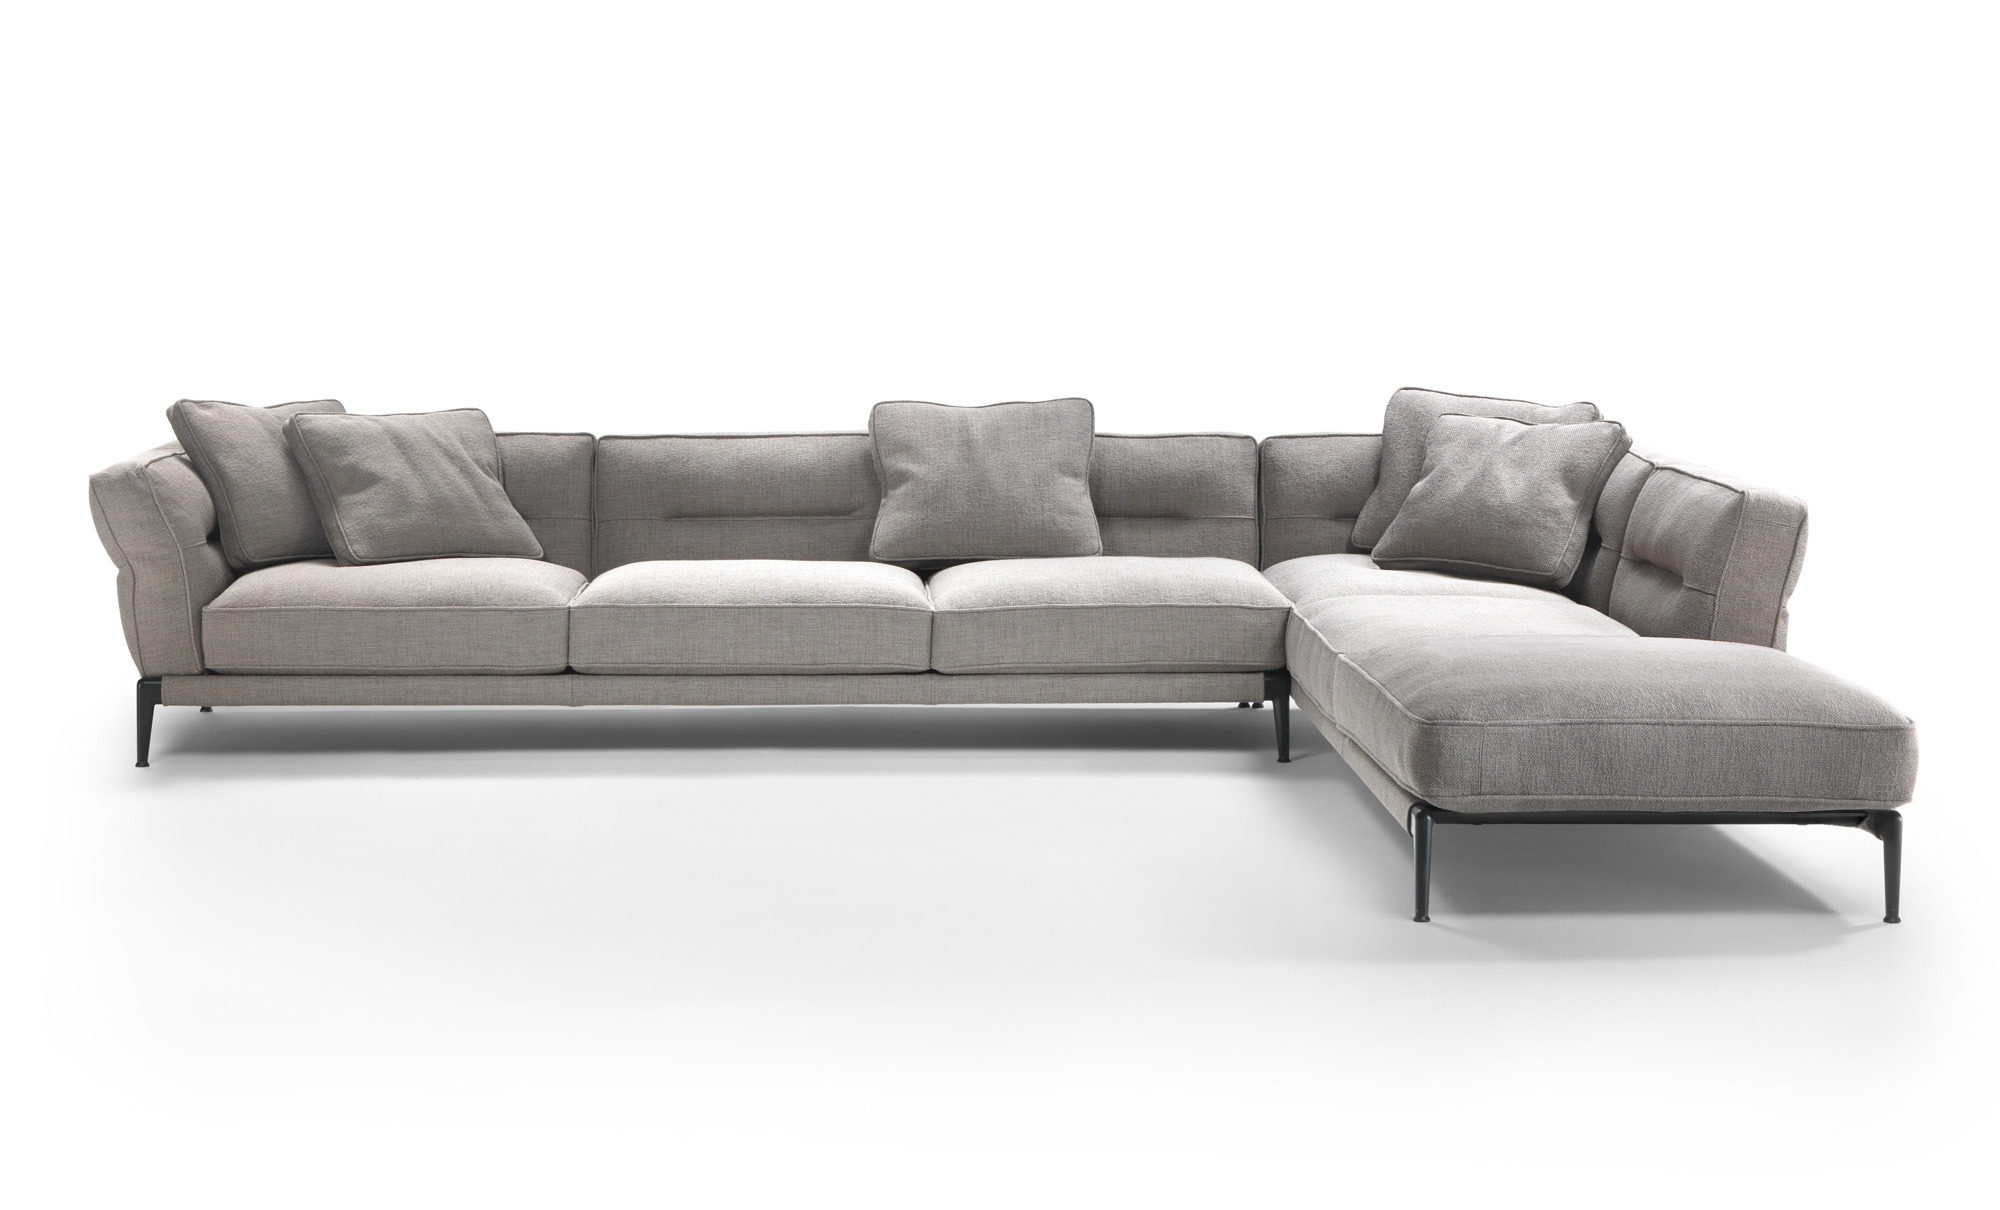 Modular Corner Sofas With 2018 Leather Sofas Fanuli Furniture Modular Corner Sofa Uk Nz And (View 16 of 20)